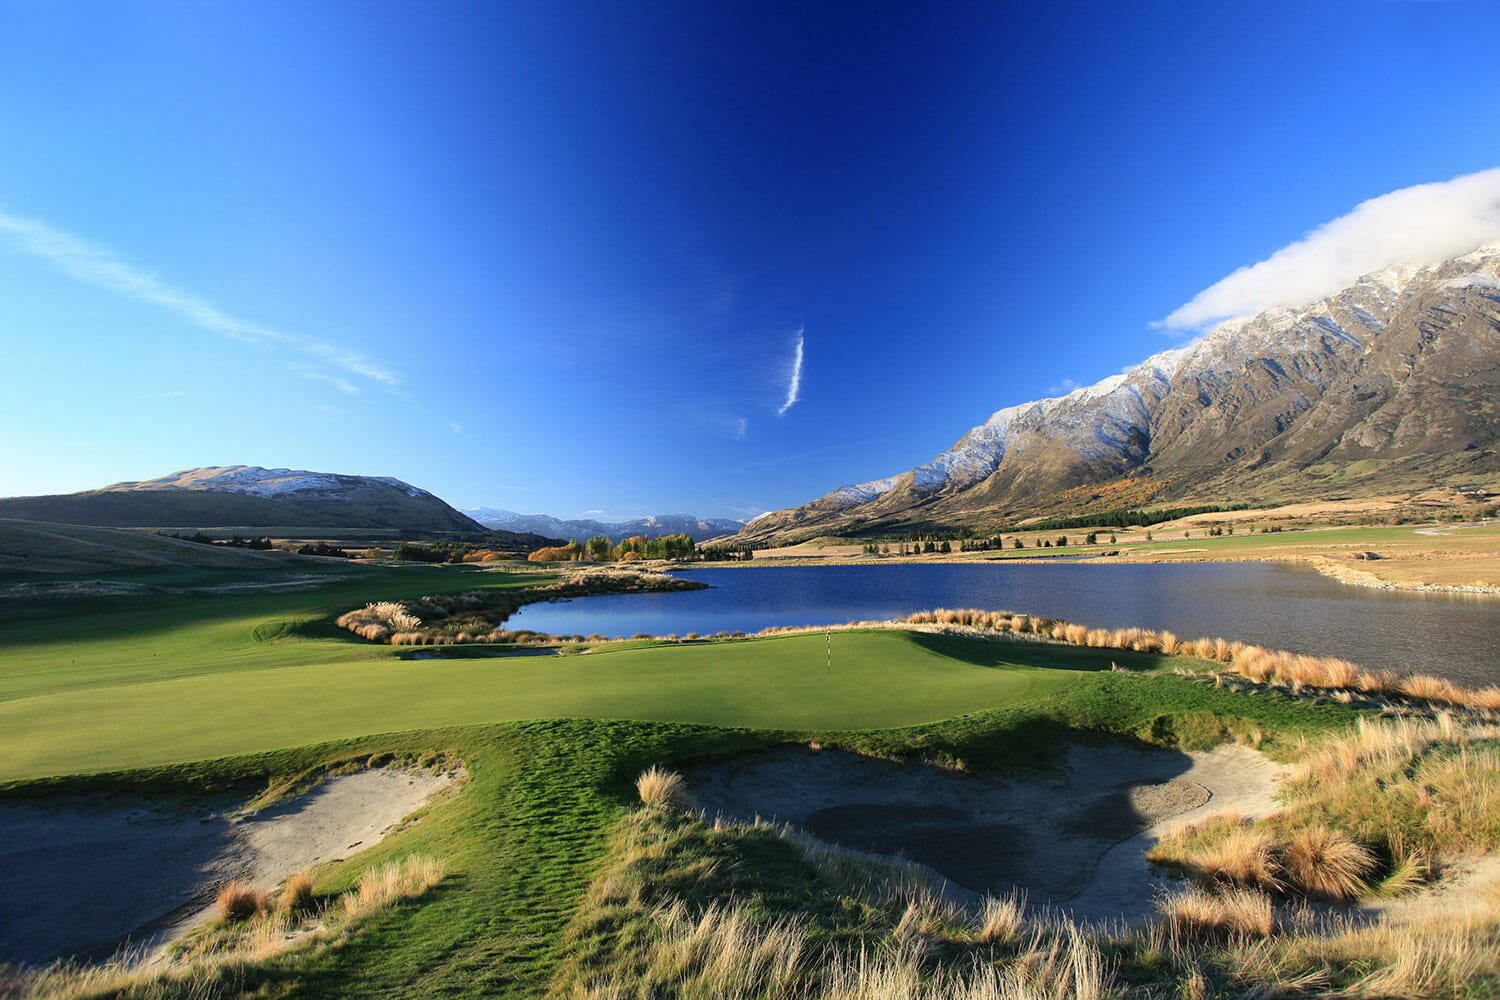 Scenic image of Jack's Point Golf Course, Lake Wakatipu and The Remarkables Mountain Range, New Zealand